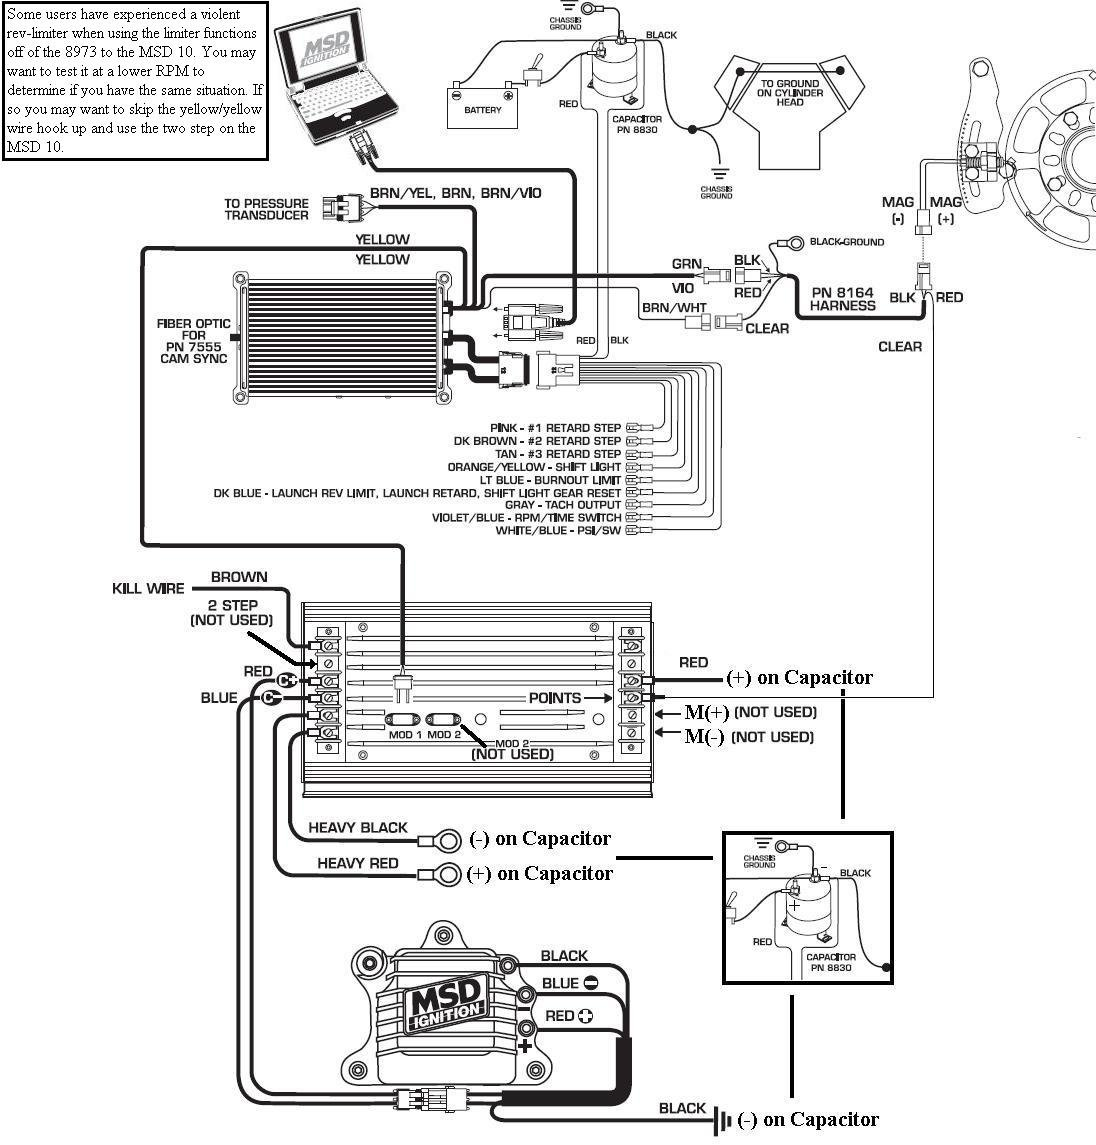 msd 8956 wiring diagram for